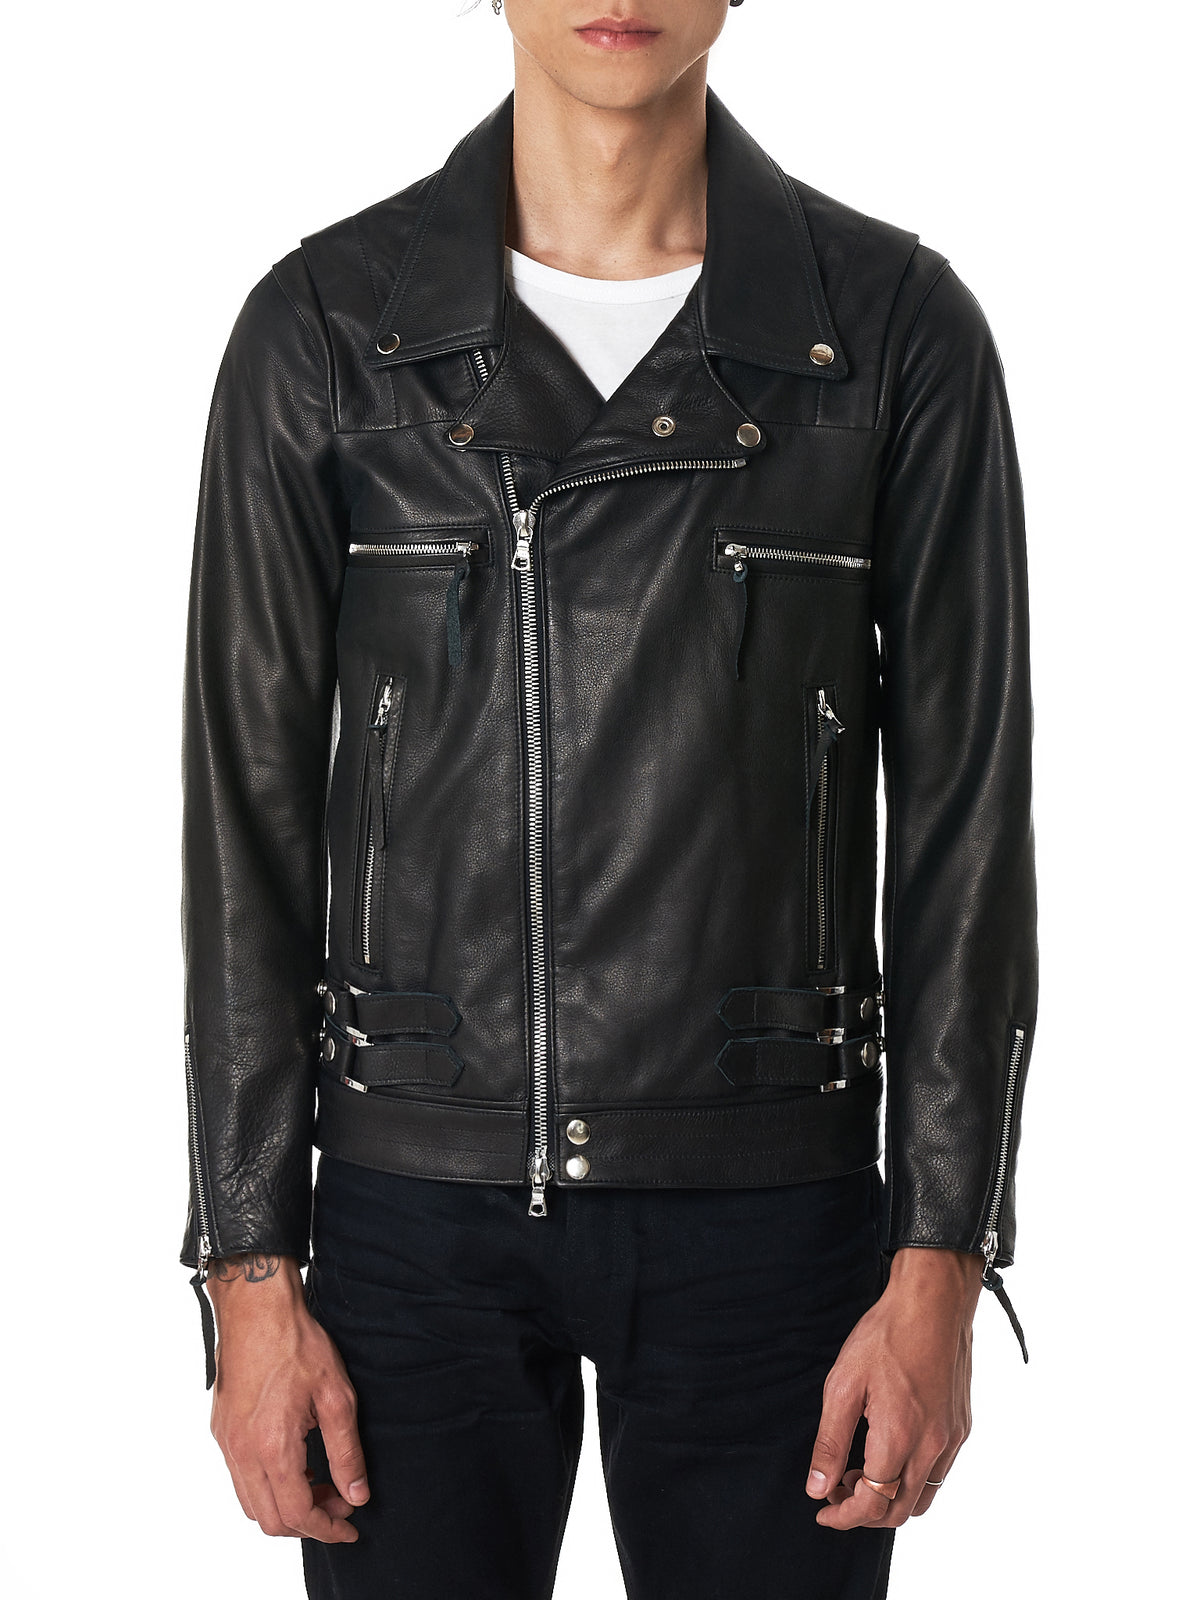 John Elliot Biker Leather Jacket - Hlorenzo Front